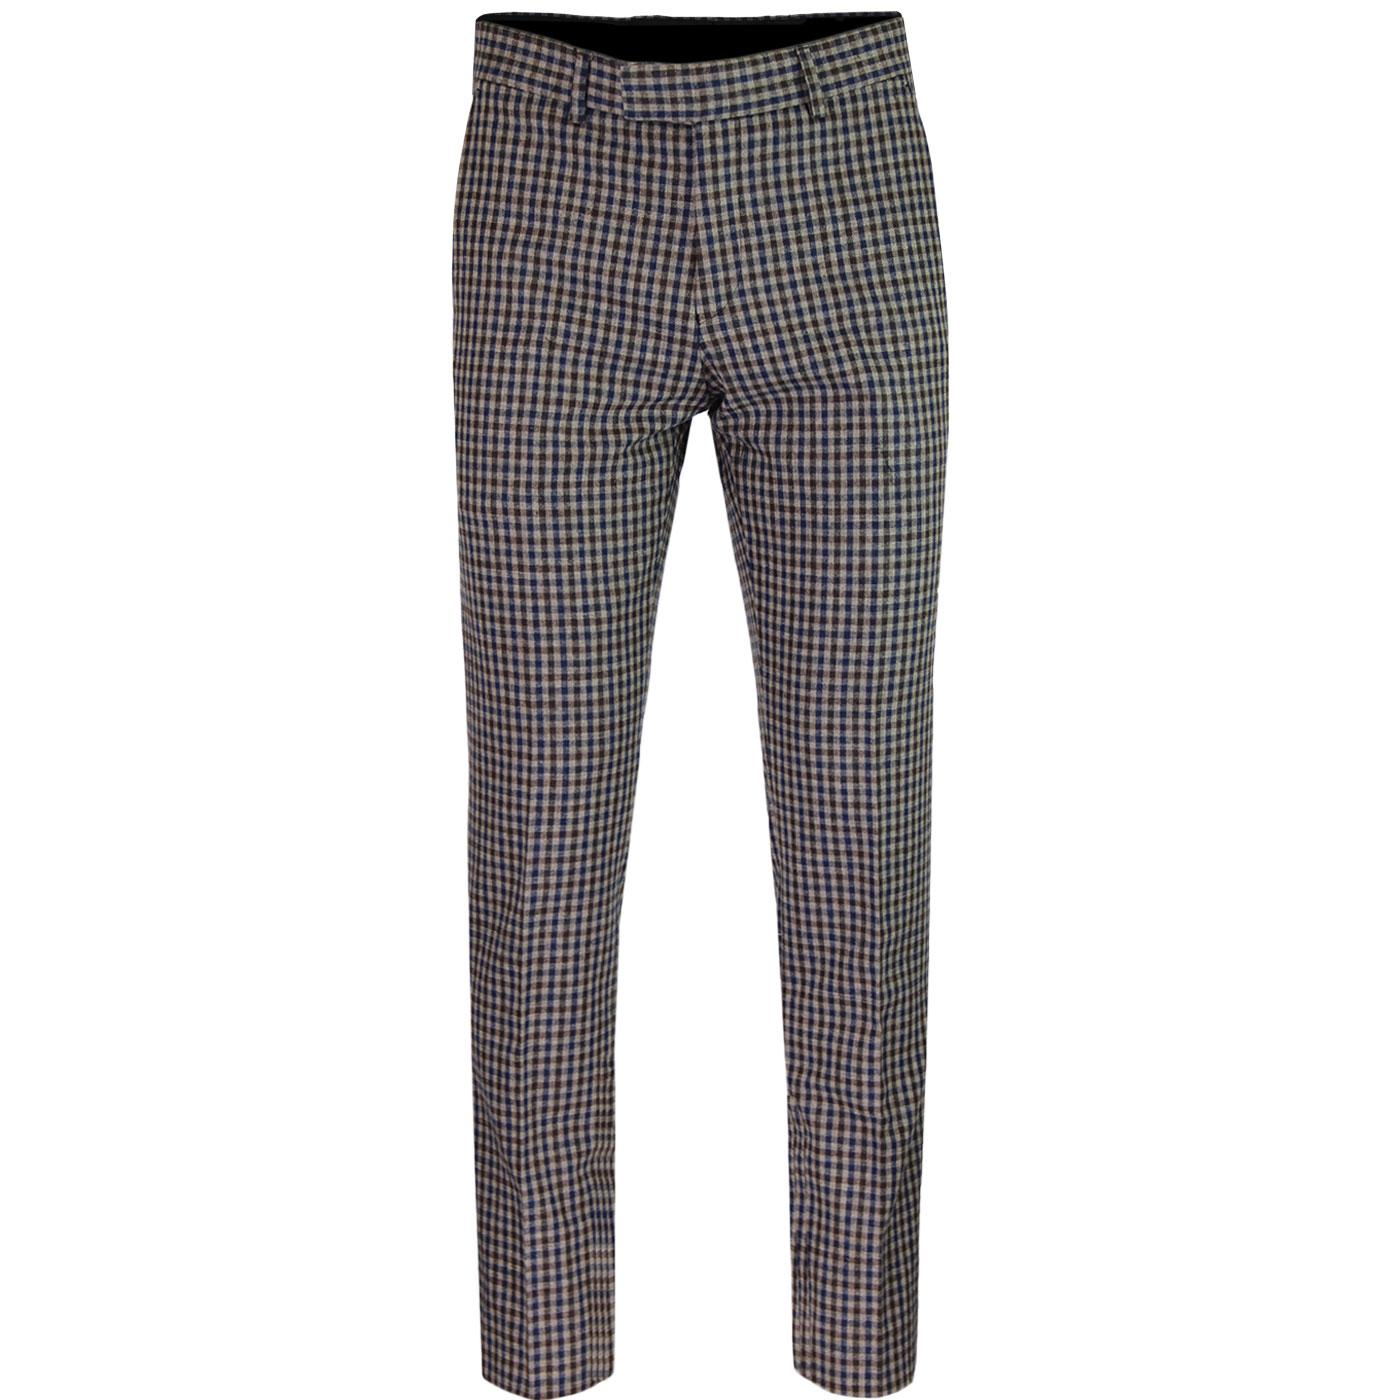 Radisson GIBSON LONDON 60s Mod Check Suit Trousers